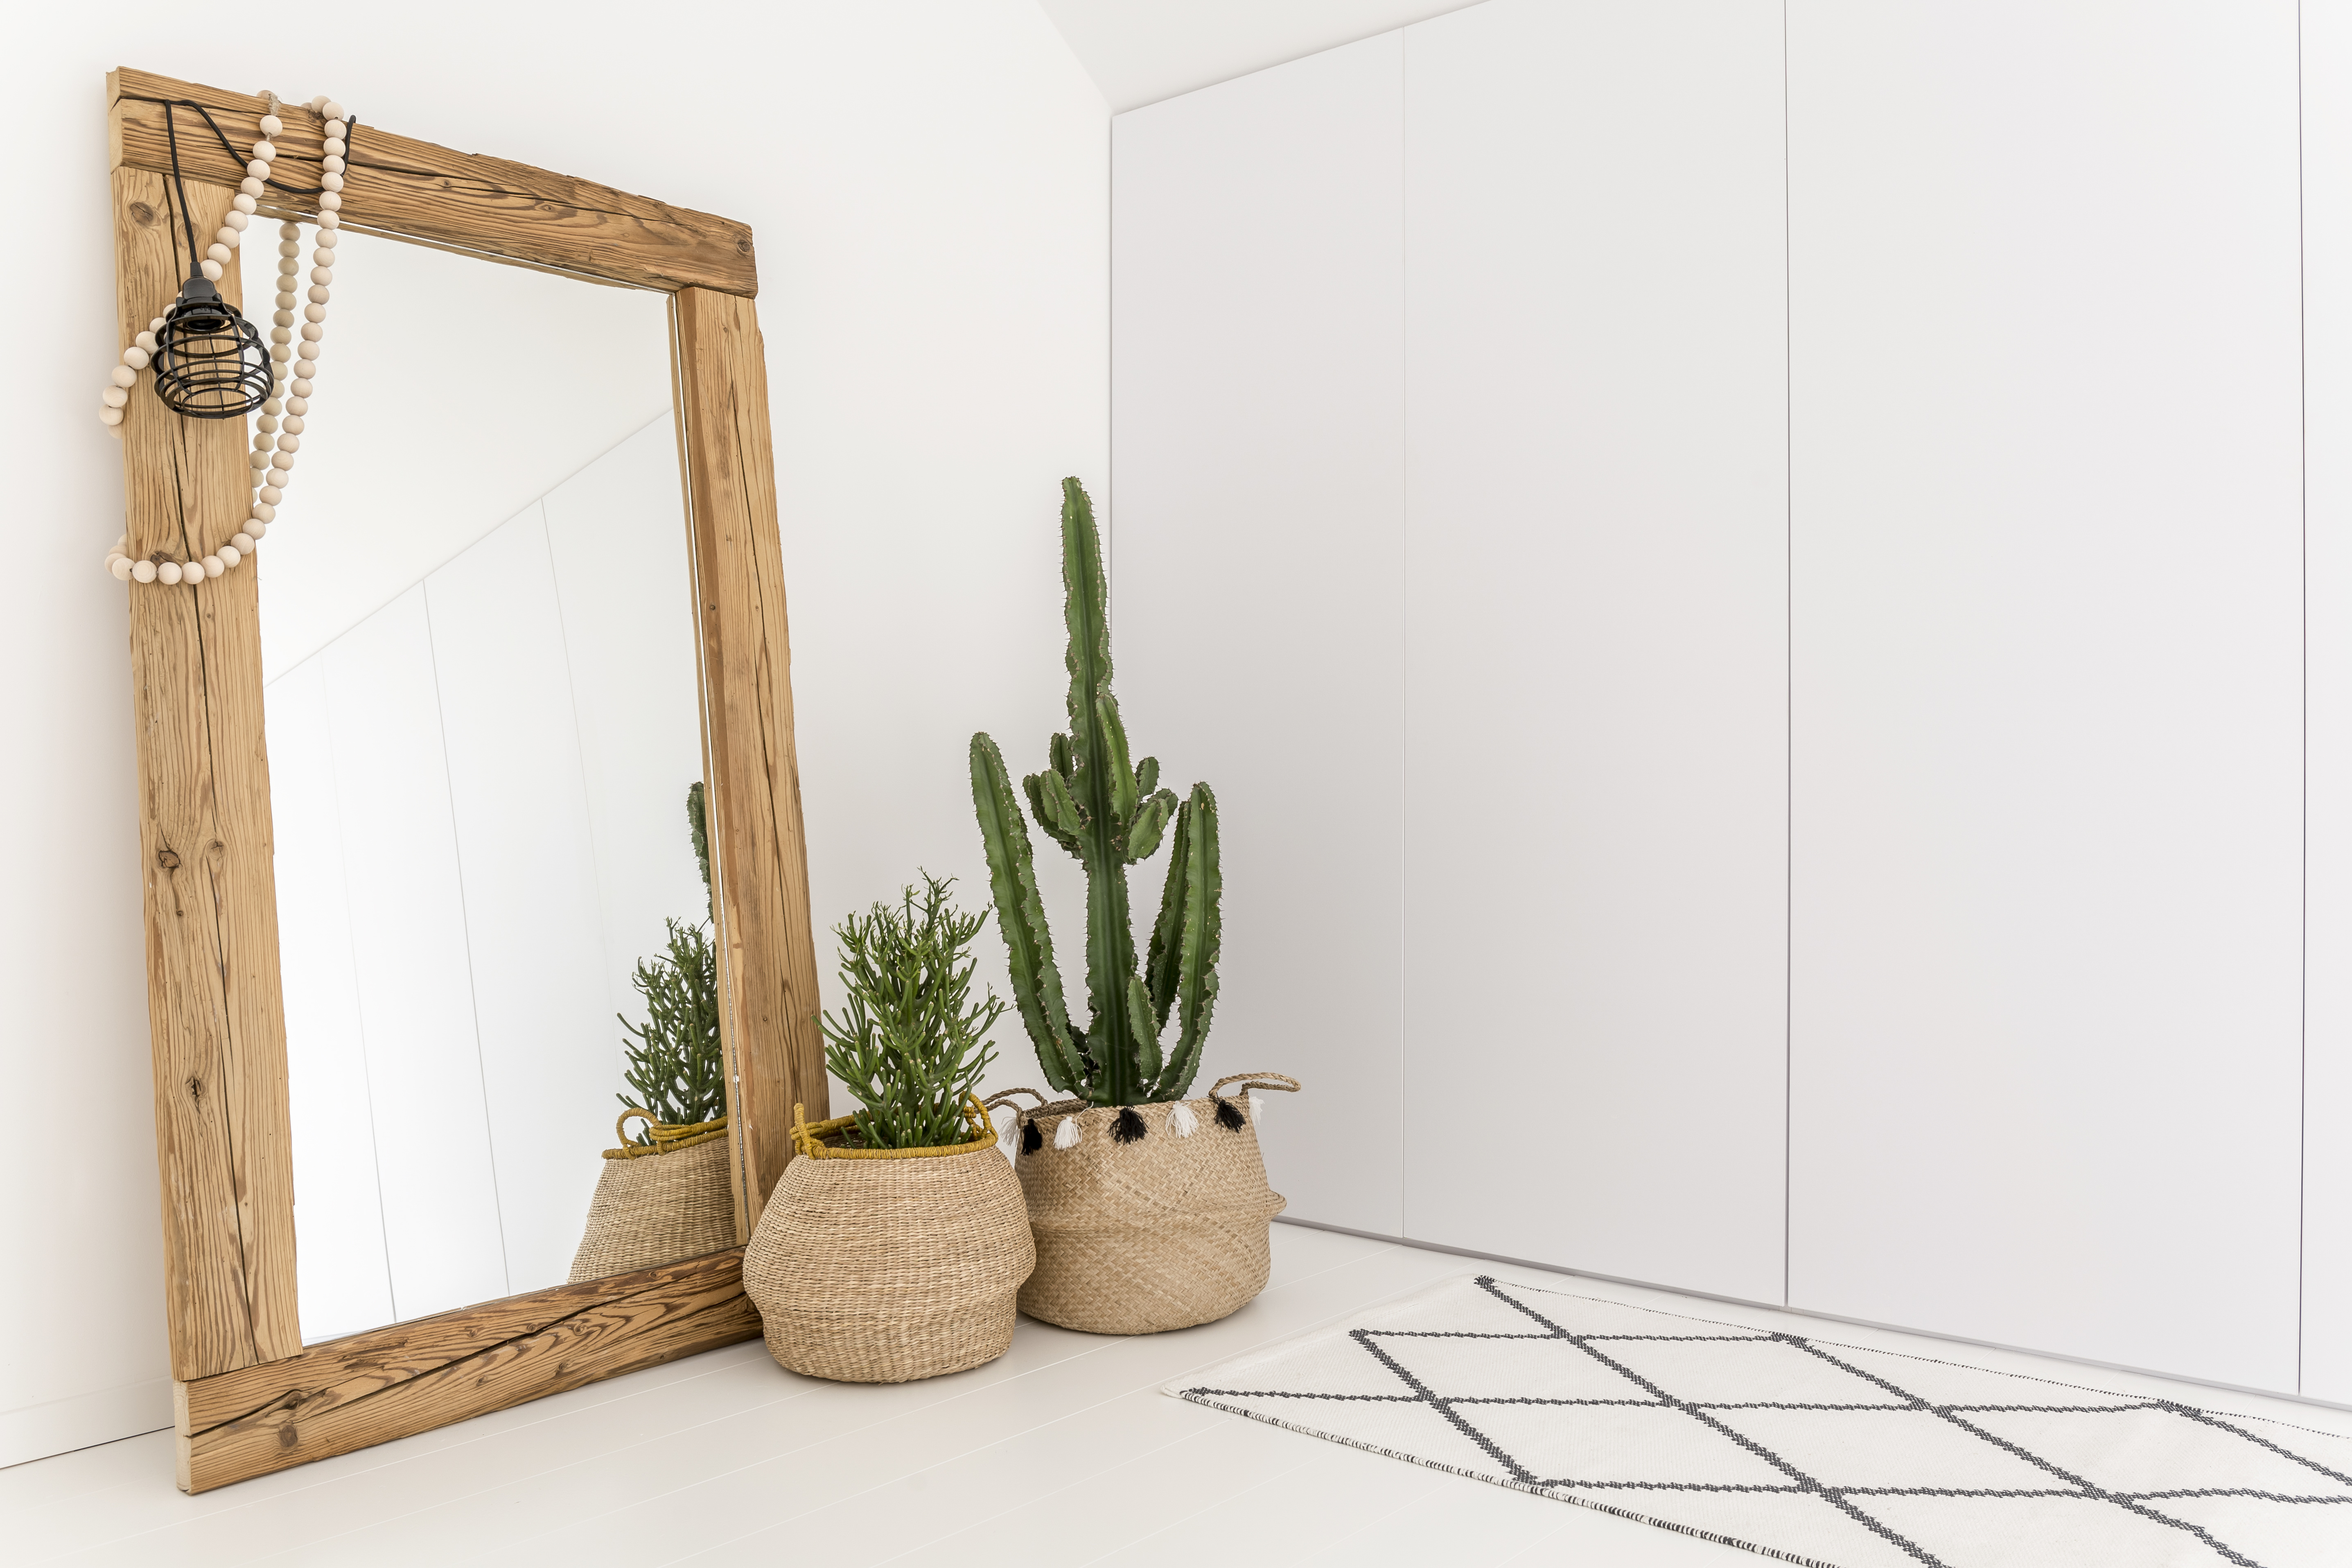 House Plants in Living Room with Large Mirror